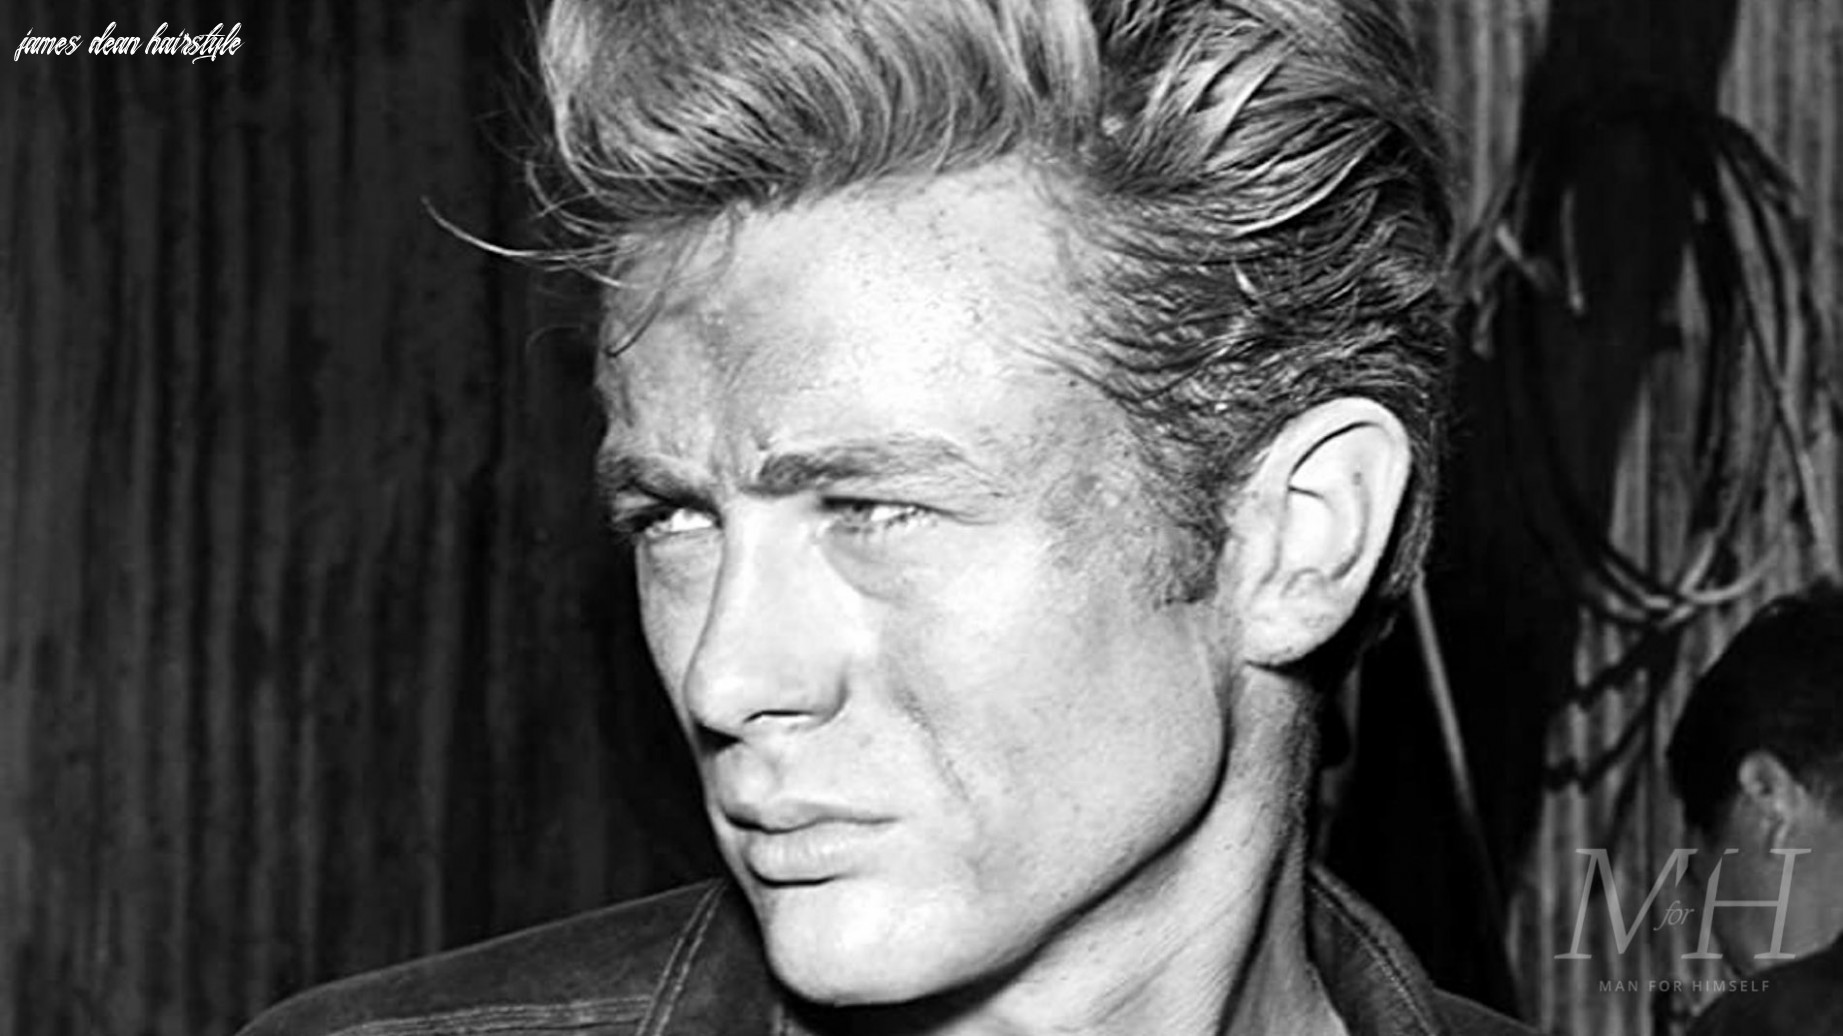 James dean: swept back hairstyle   man for himself james dean hairstyle